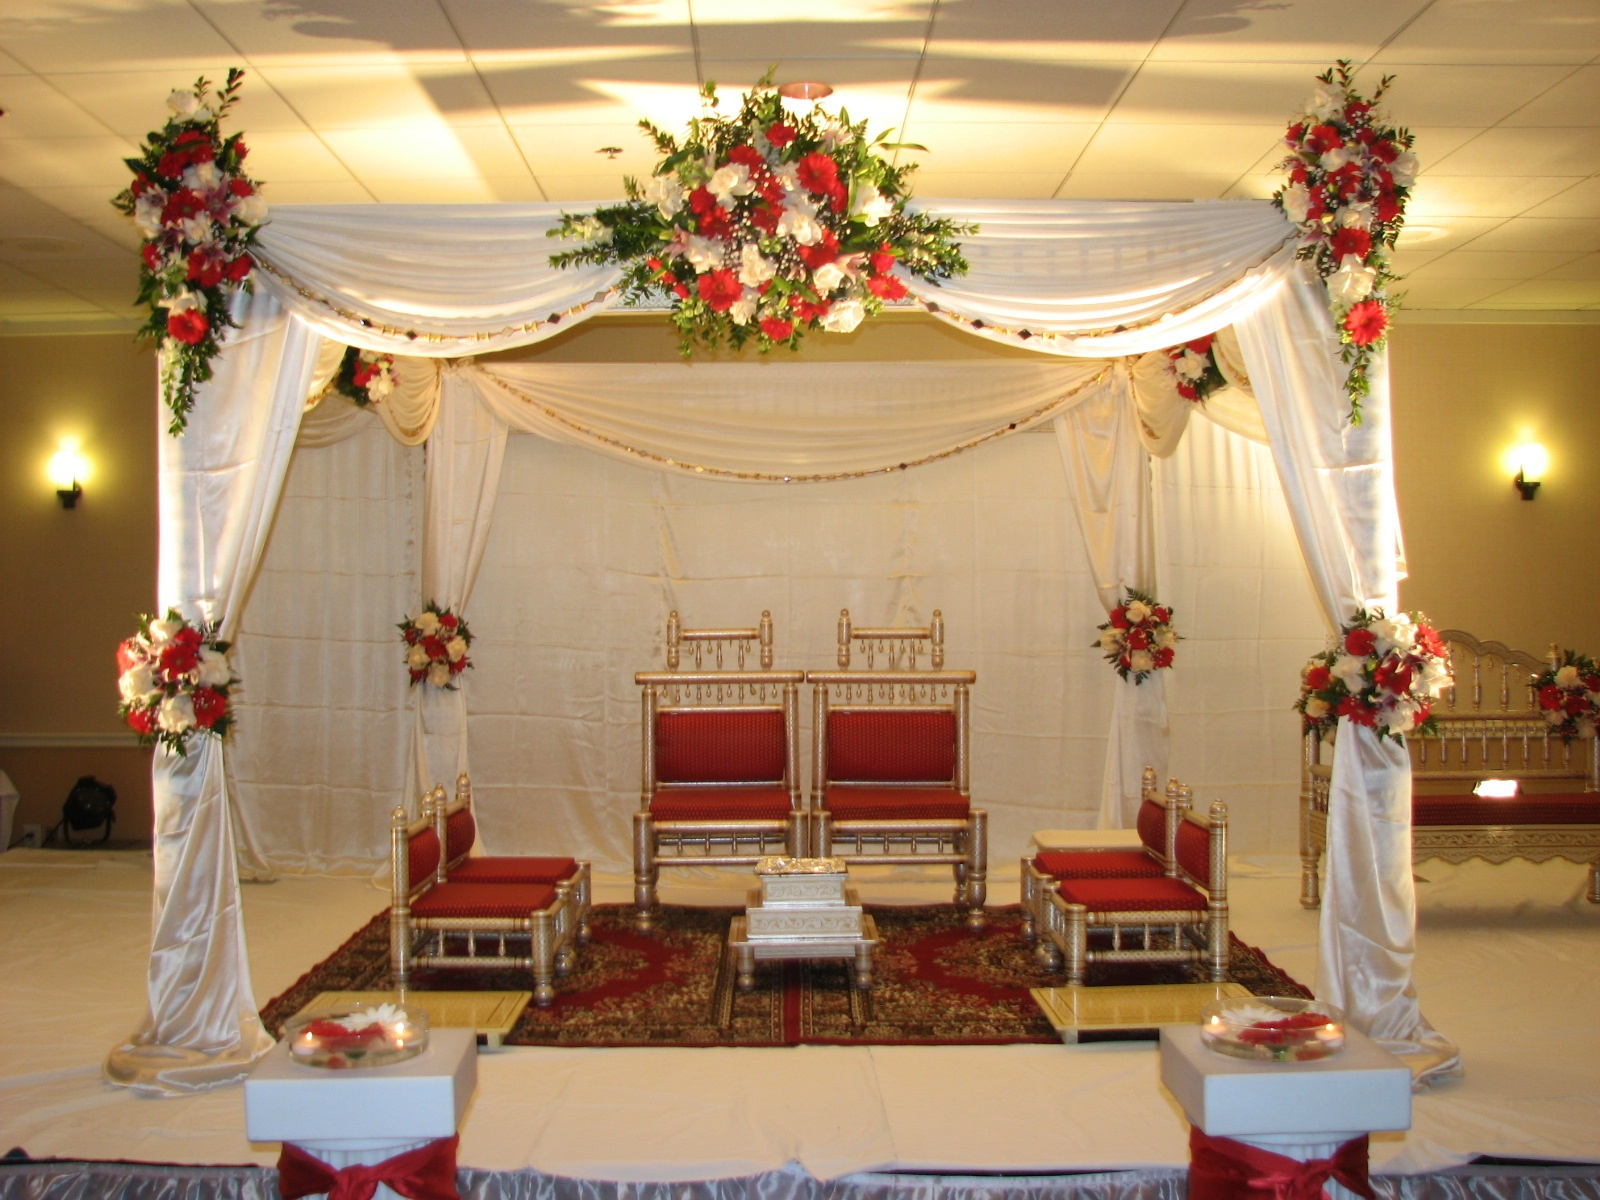 Wedding Decoration Ideas Indian Wedding Decorations Tampa Tampa Bay Wedding Florist